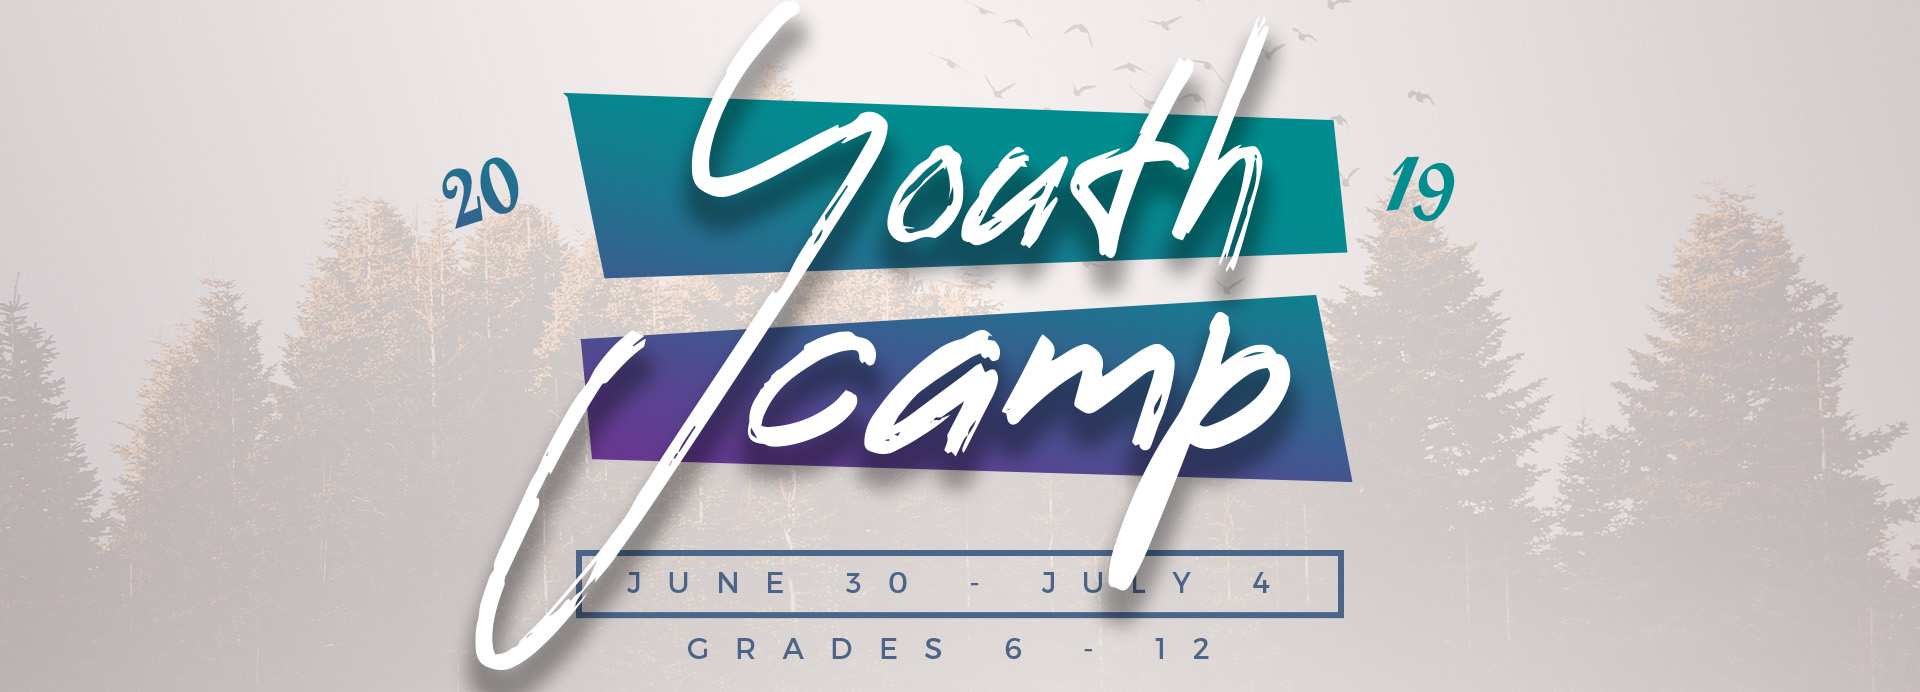 1920x692 Youth Summer Camp.jpg